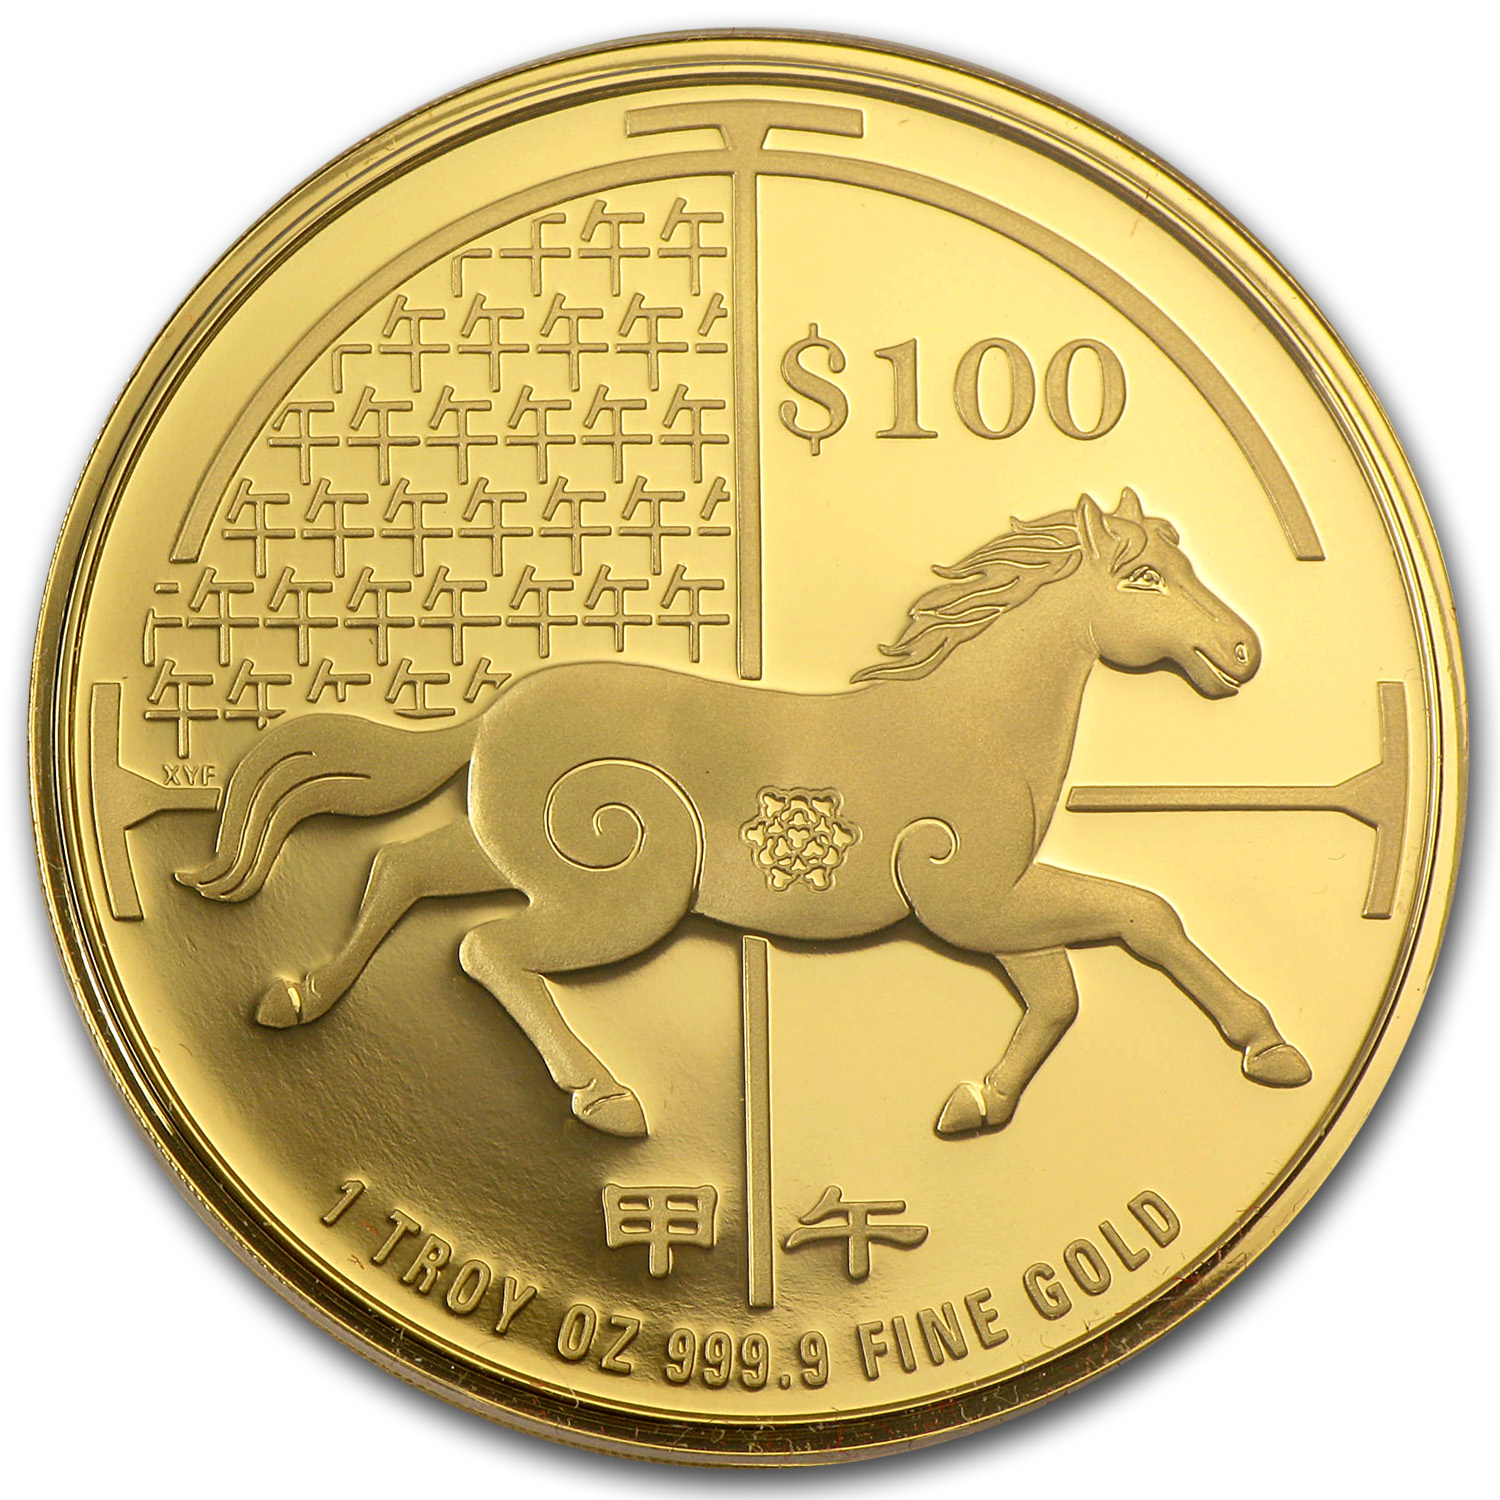 Singapore 2014 Year of the Horse 1 oz Gold Proof Coin